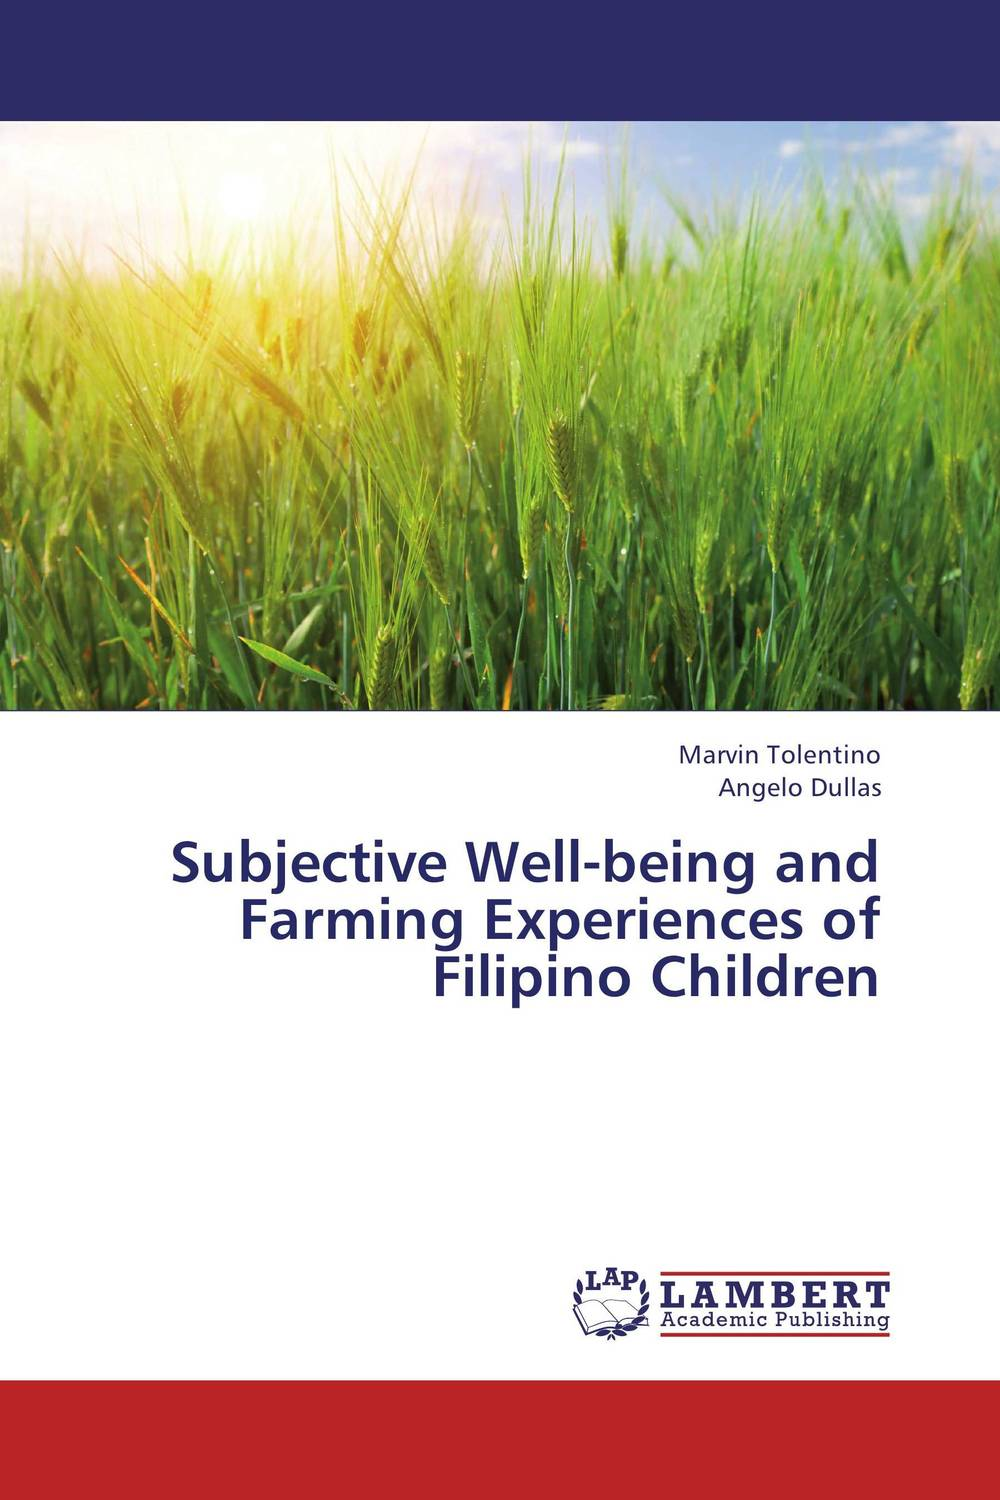 Subjective Well-being and Farming Experiences of Filipino Children filipino alcoholic fathers and their adolescent children